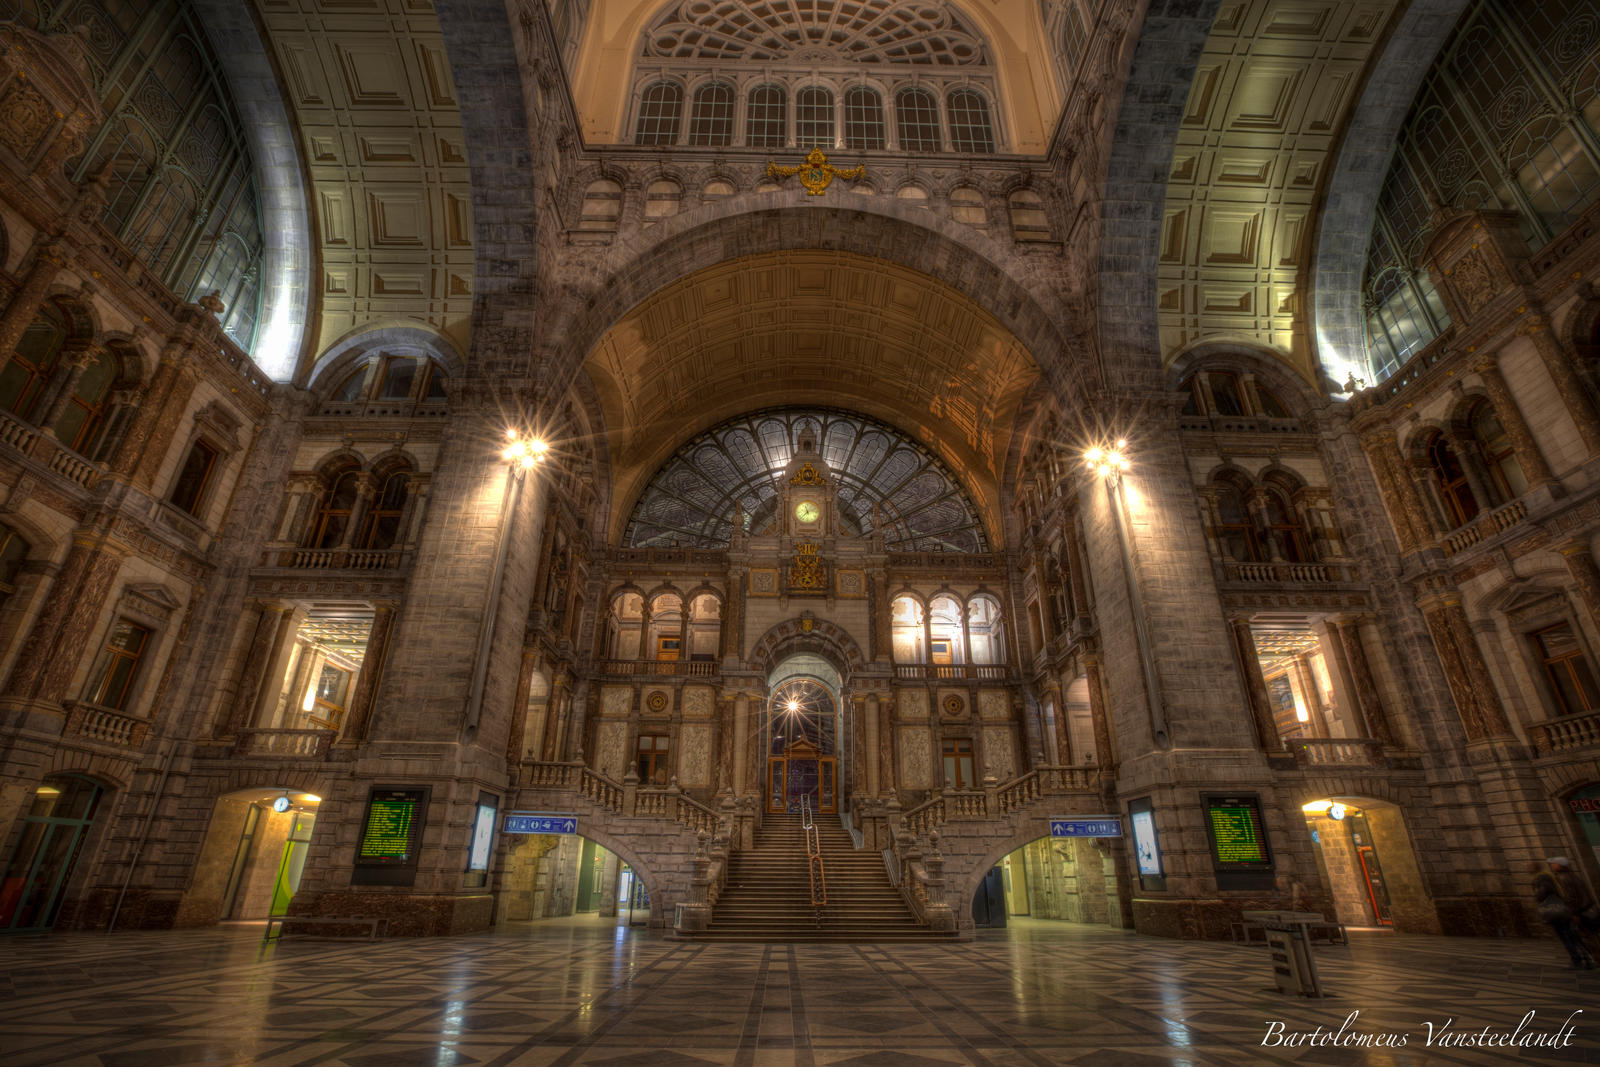 Central station antwerp belgium by bartoloman on deviantart for Interieur antwerpen